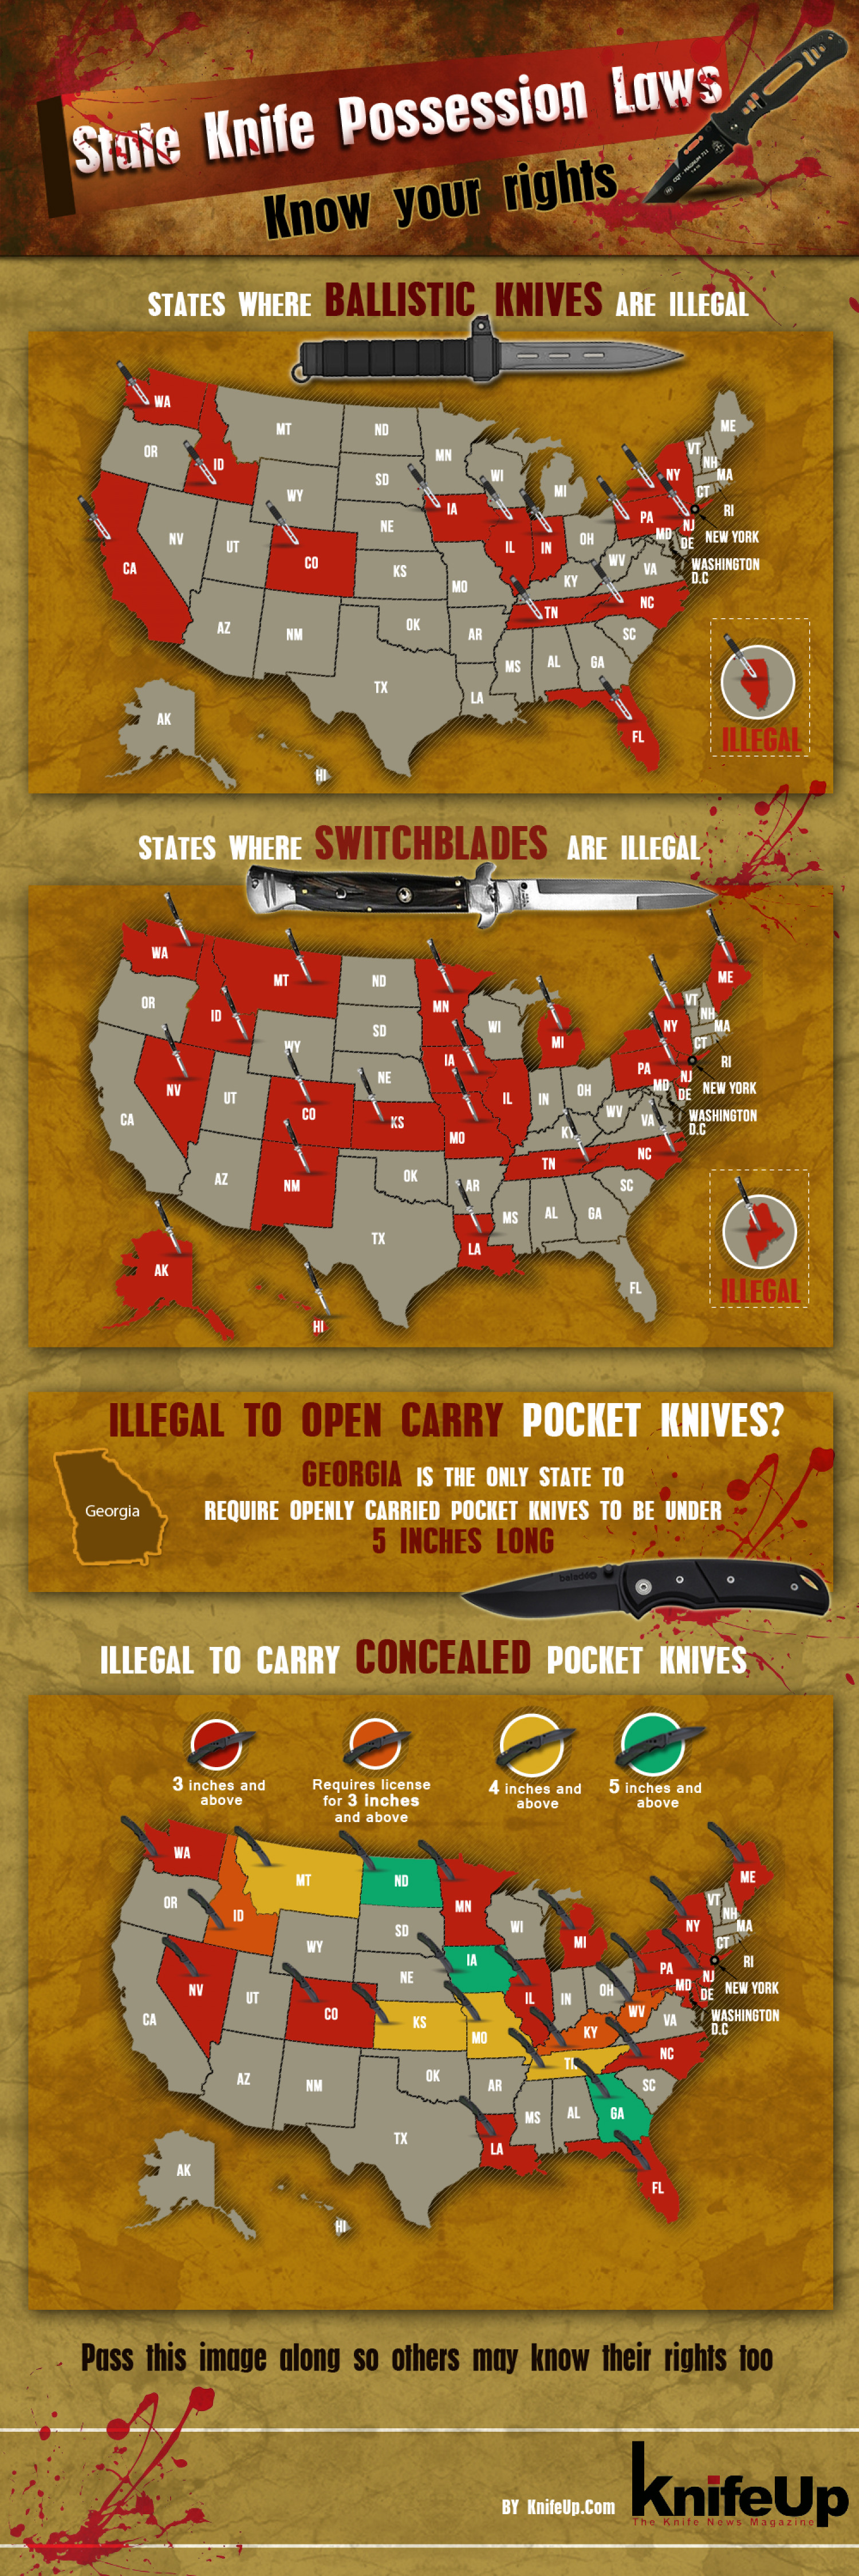 State Knife Possession Laws: Know your Rights Infographic